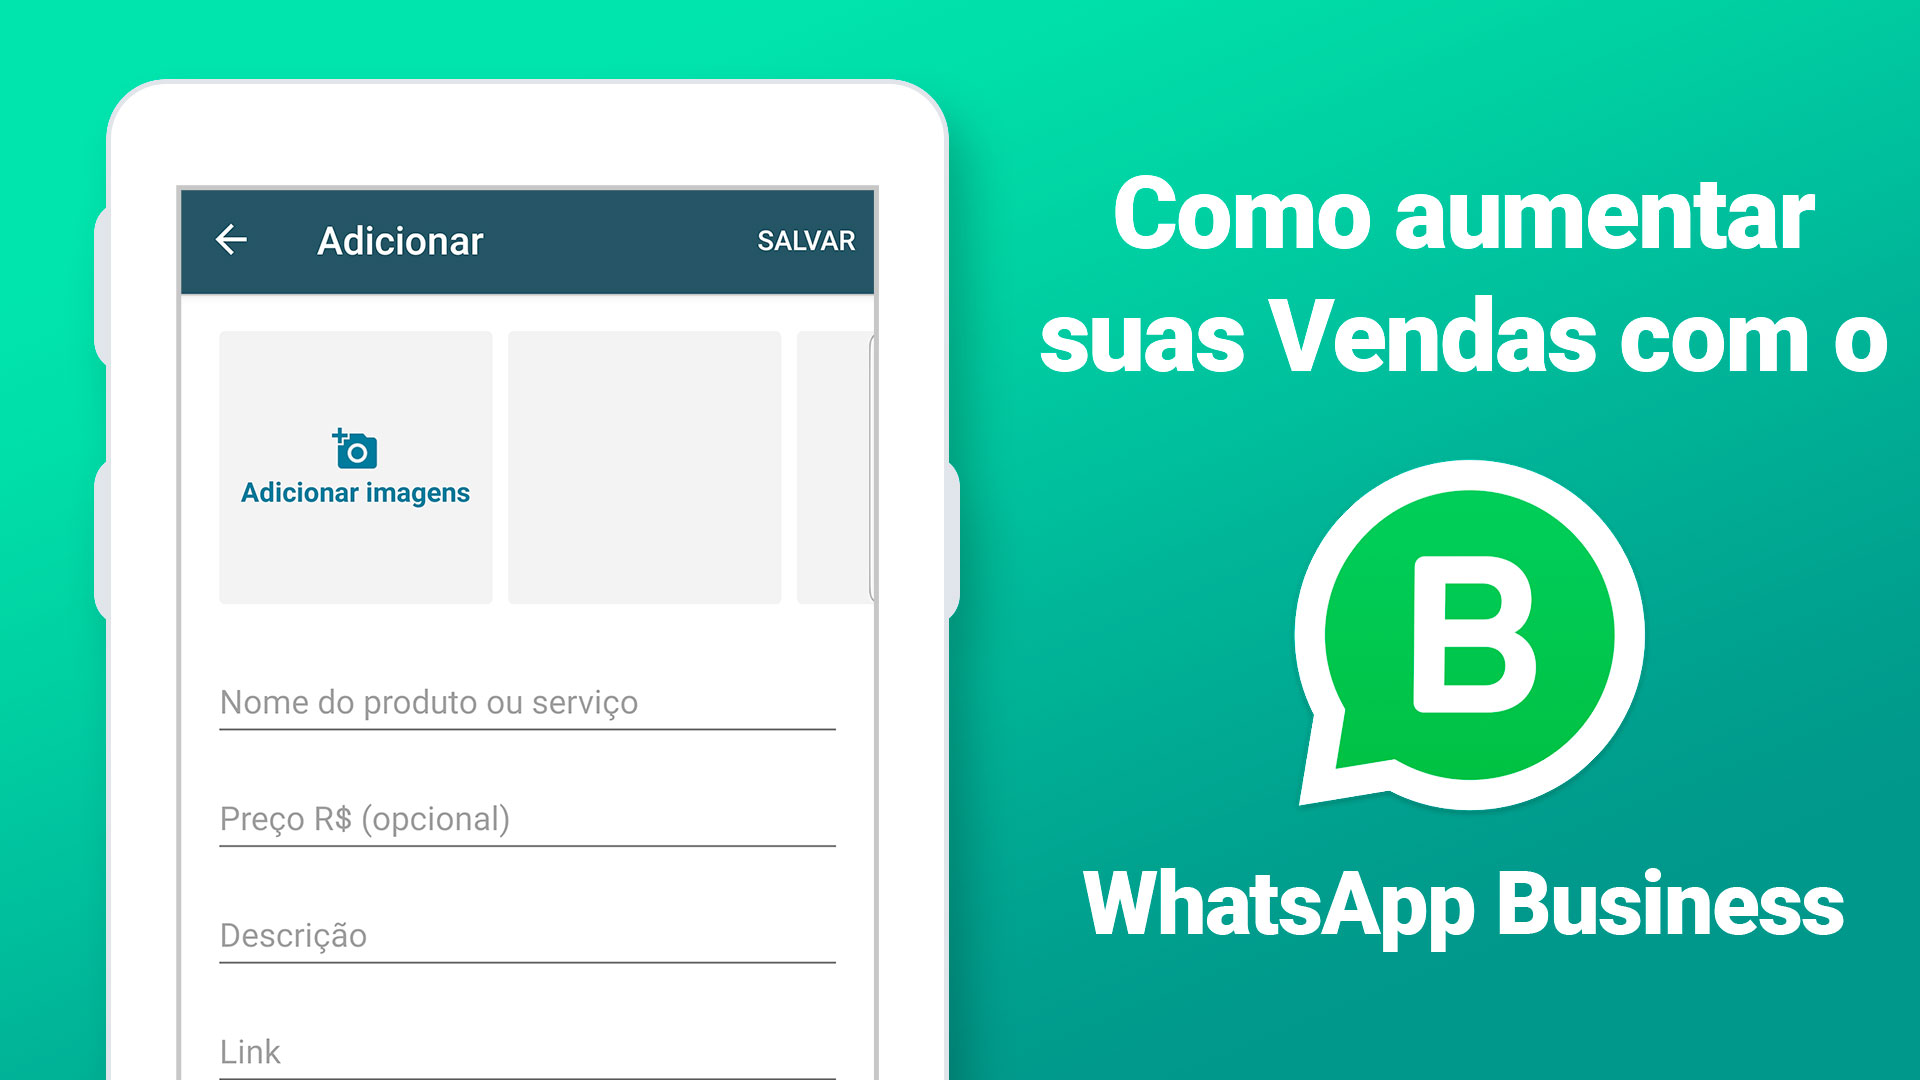 Como aumentar suas Vendas com o WhatsApp Business